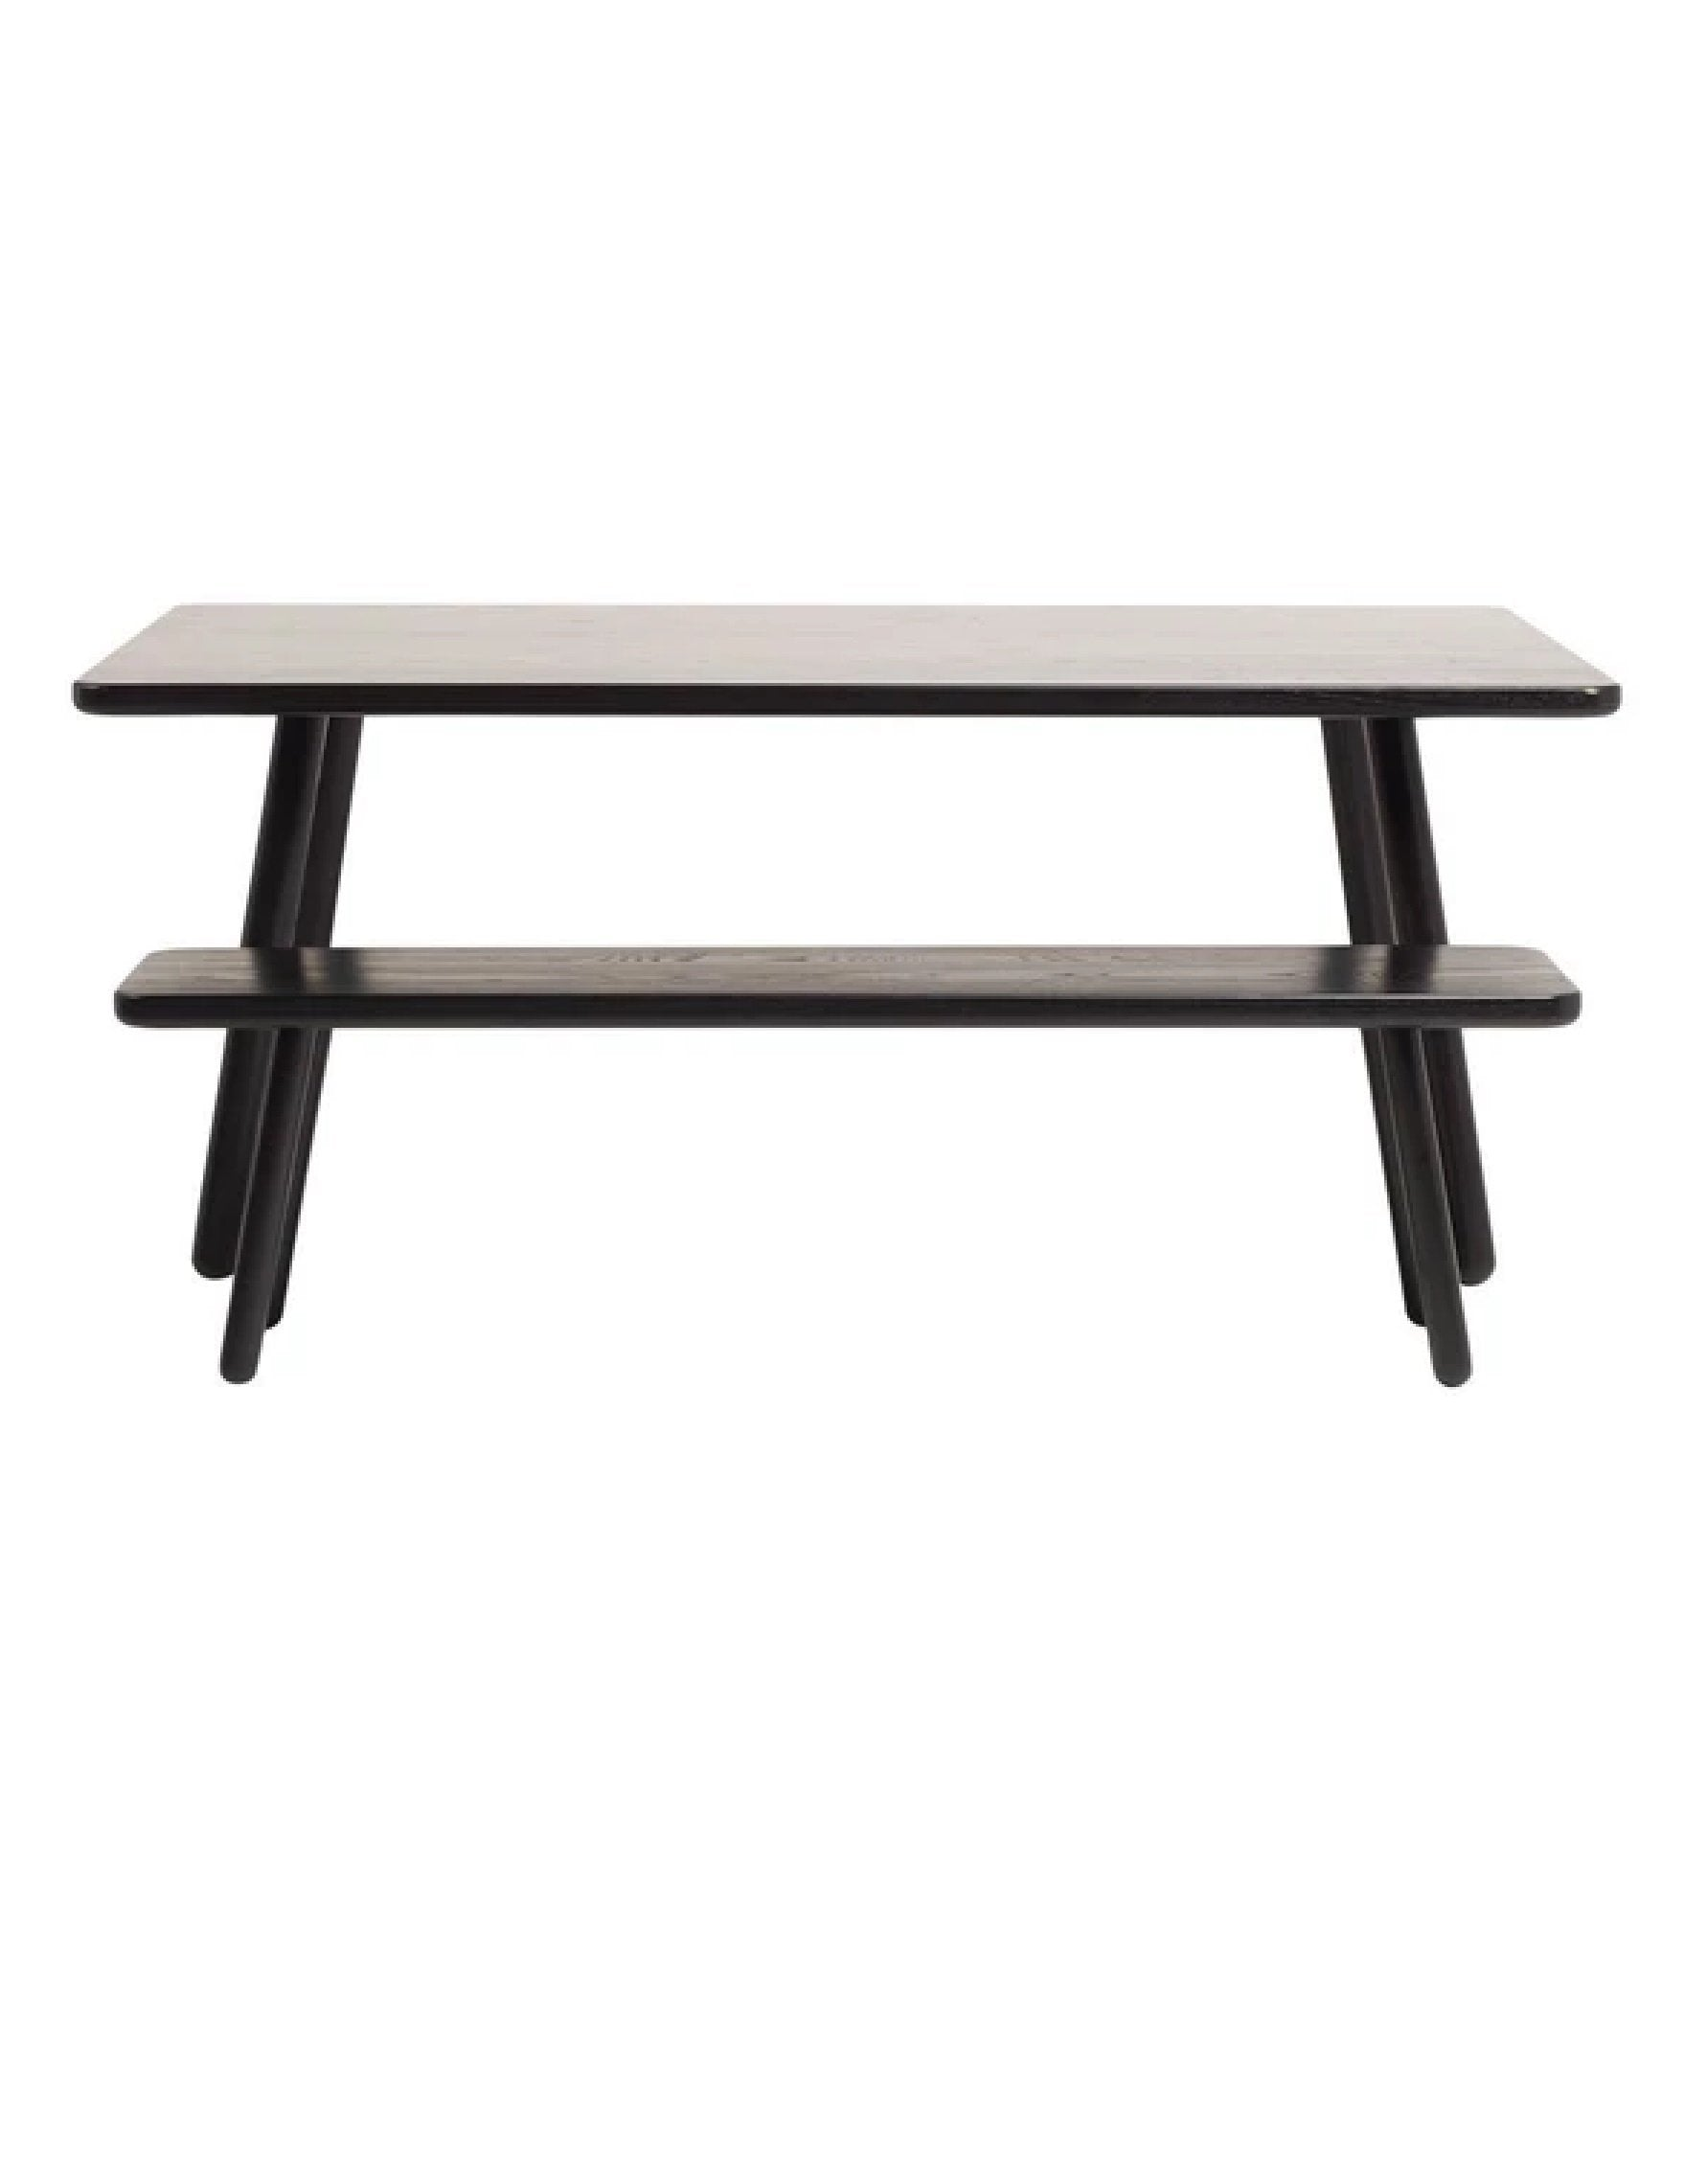 "Another Country Dining Table One Ash - Black Painted 63"" W x 31.5"" D x 29.13"" H"